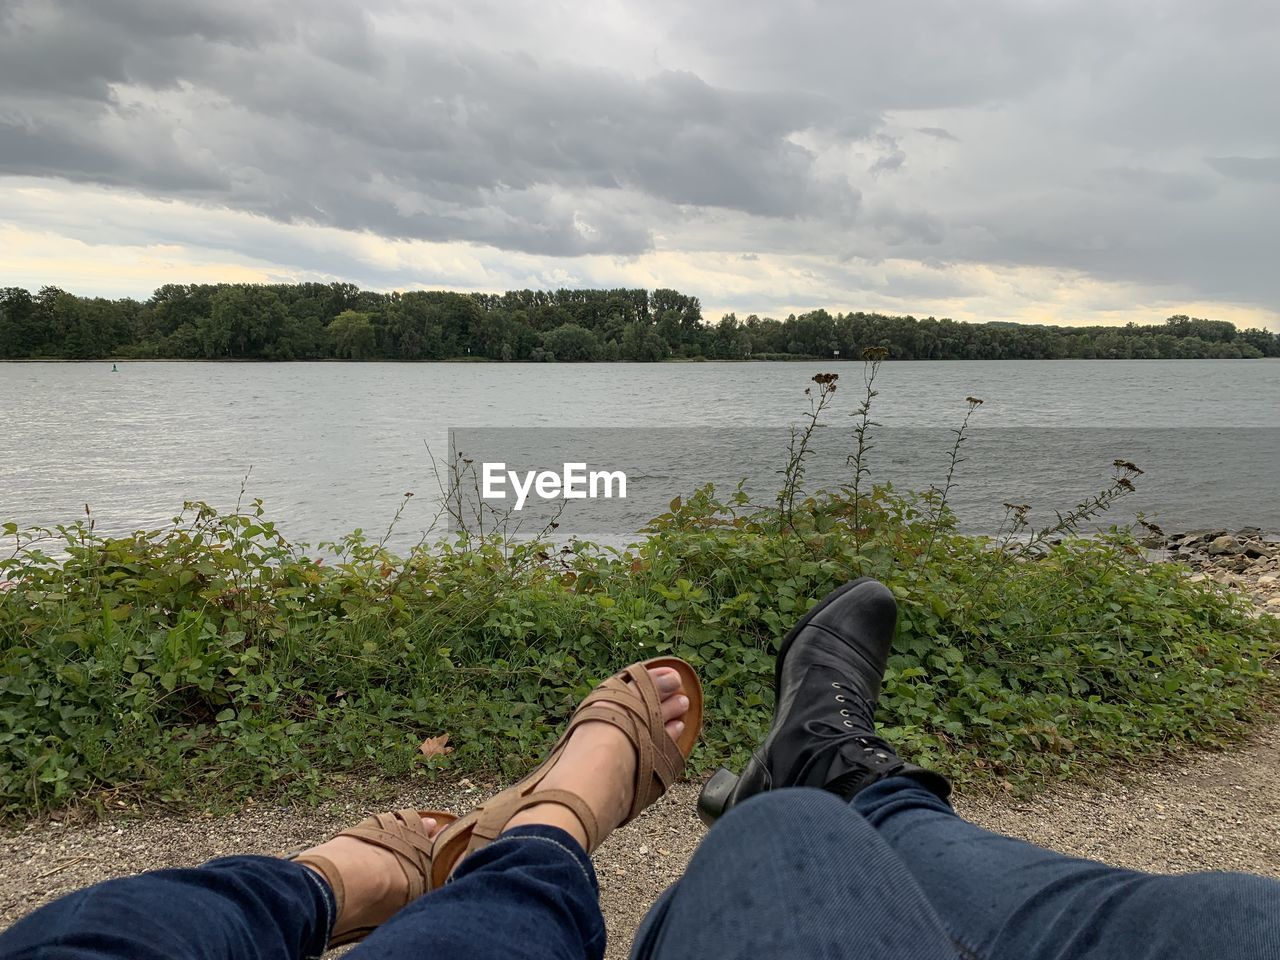 water, personal perspective, real people, human leg, low section, sky, lifestyles, one person, leisure activity, body part, cloud - sky, lake, human body part, plant, beauty in nature, nature, shoe, men, jeans, outdoors, human foot